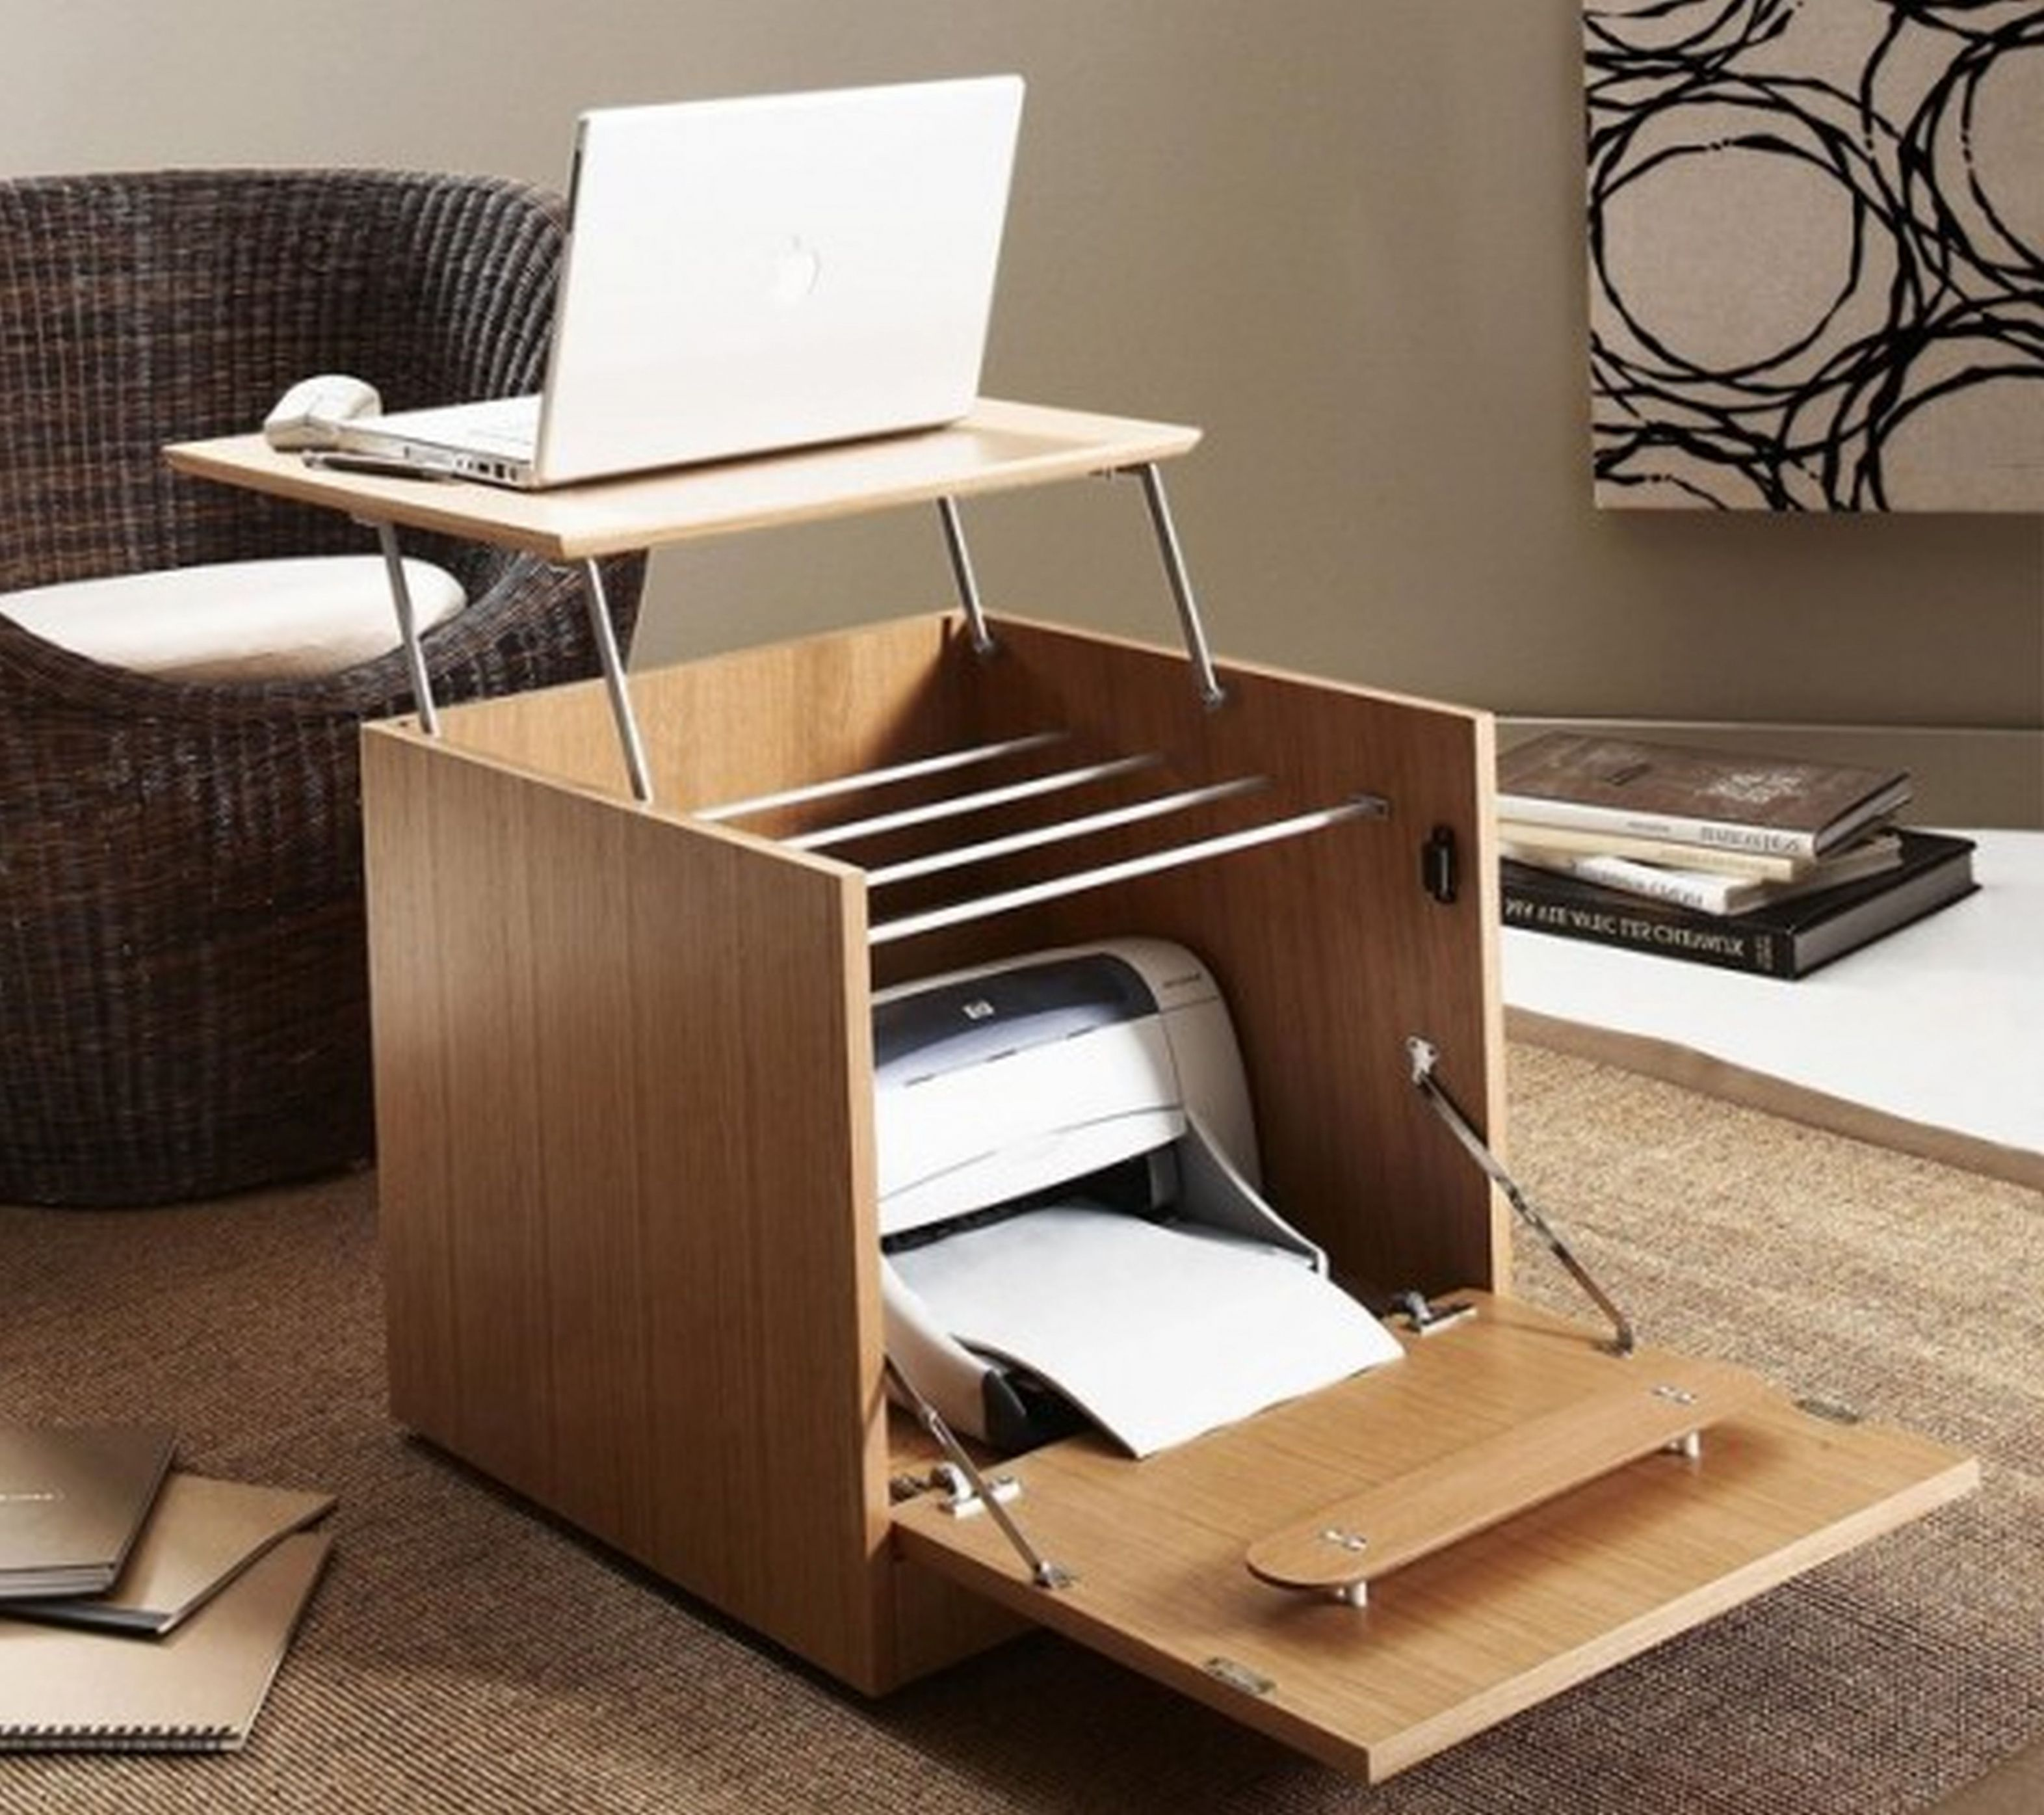 space saver desks home office. 99+ Space Saver Desks Home Office - Furniture Sets Check More At Http A